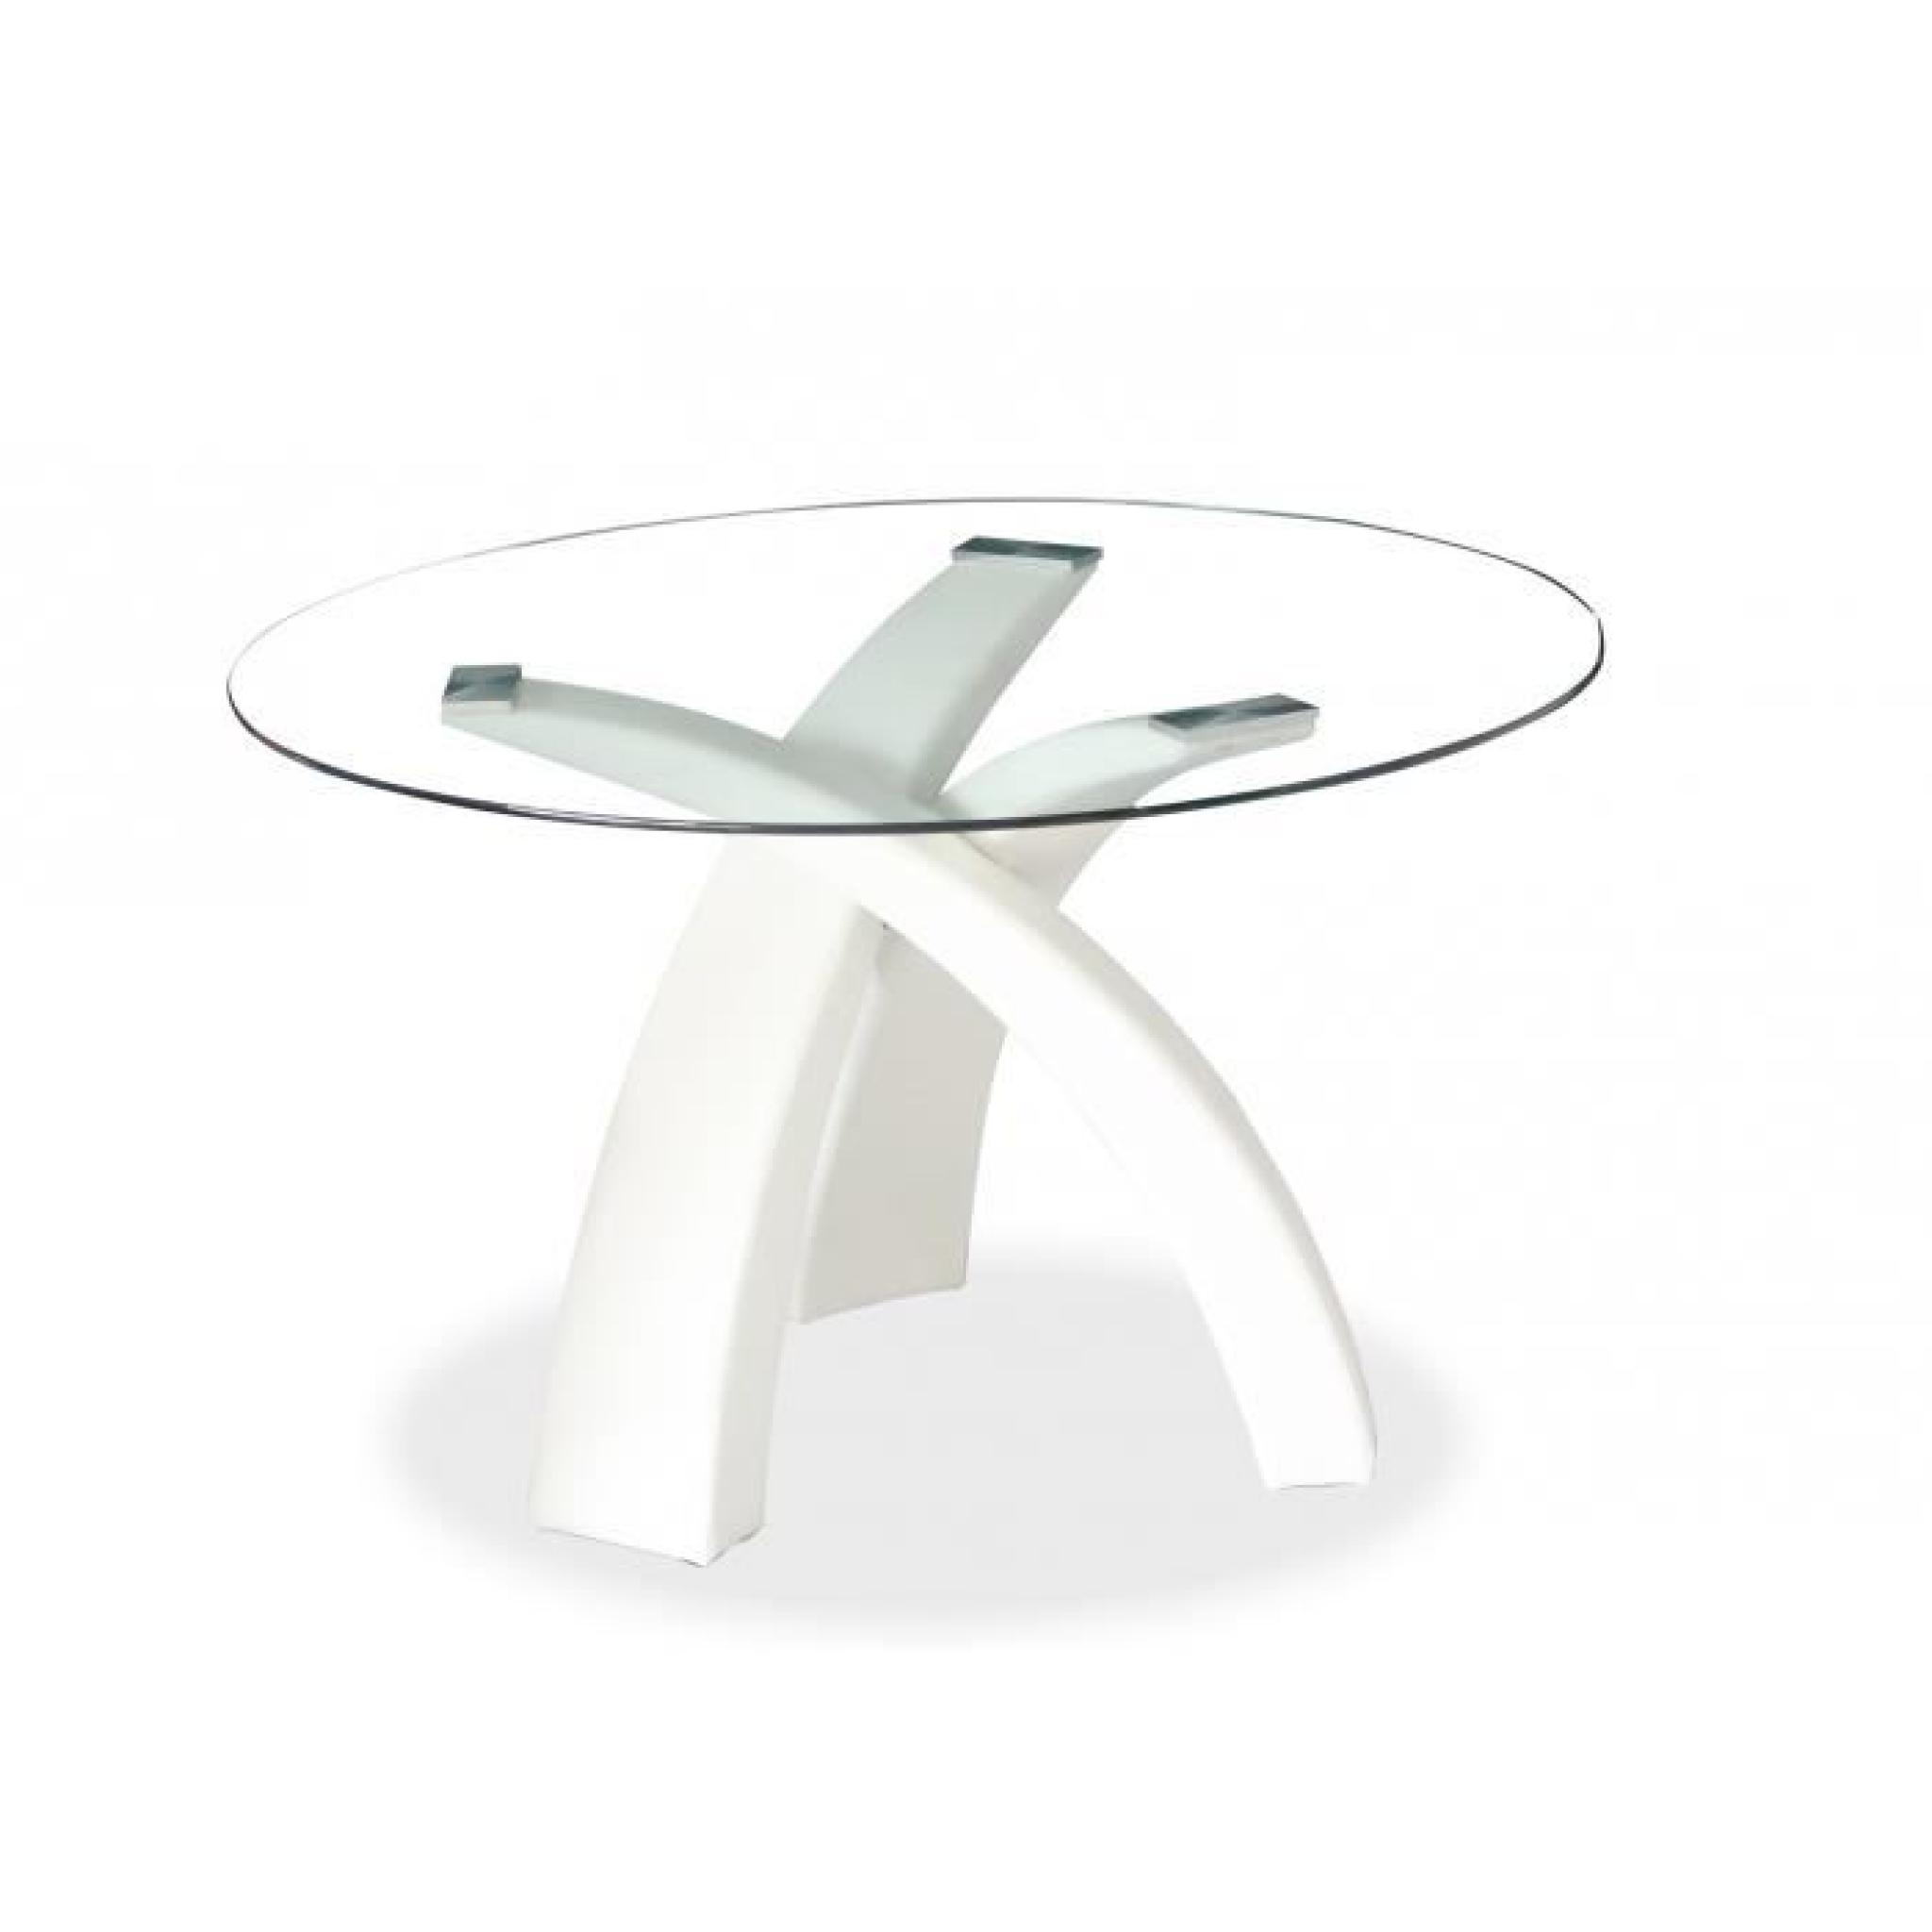 Table manger ronde blanche gore achat vente table for Table salle manger ronde